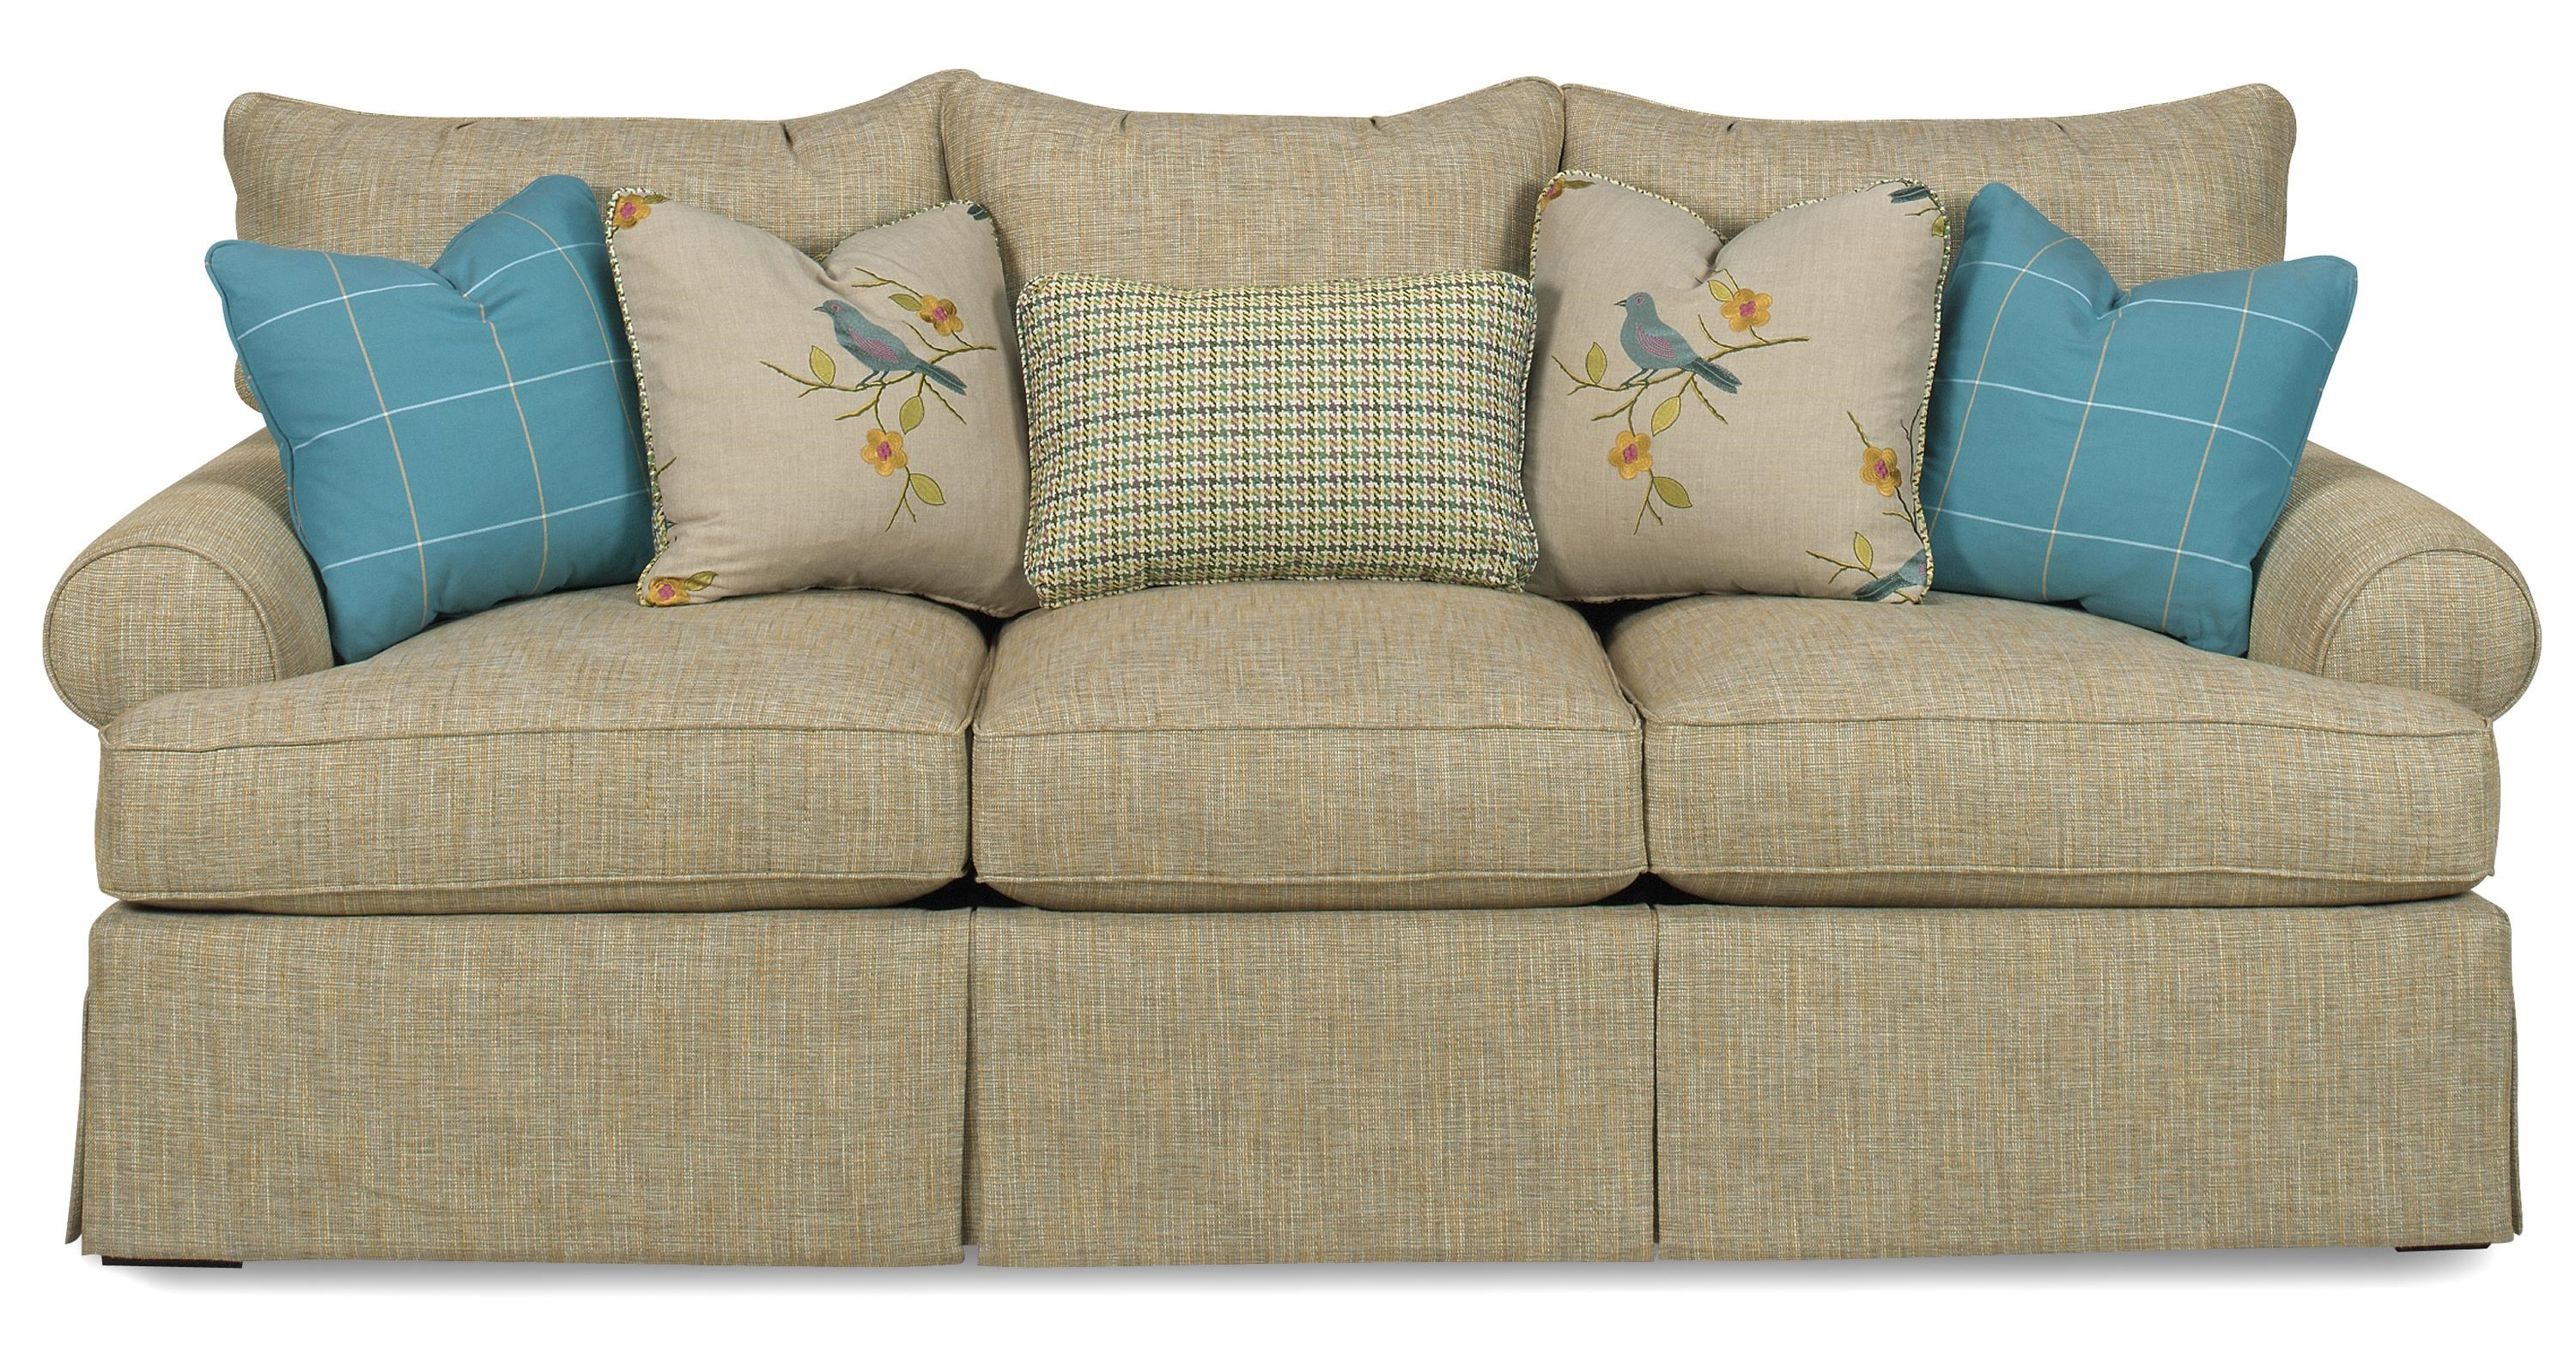 Paula Deen By Craftmaster P997000Sofa ...